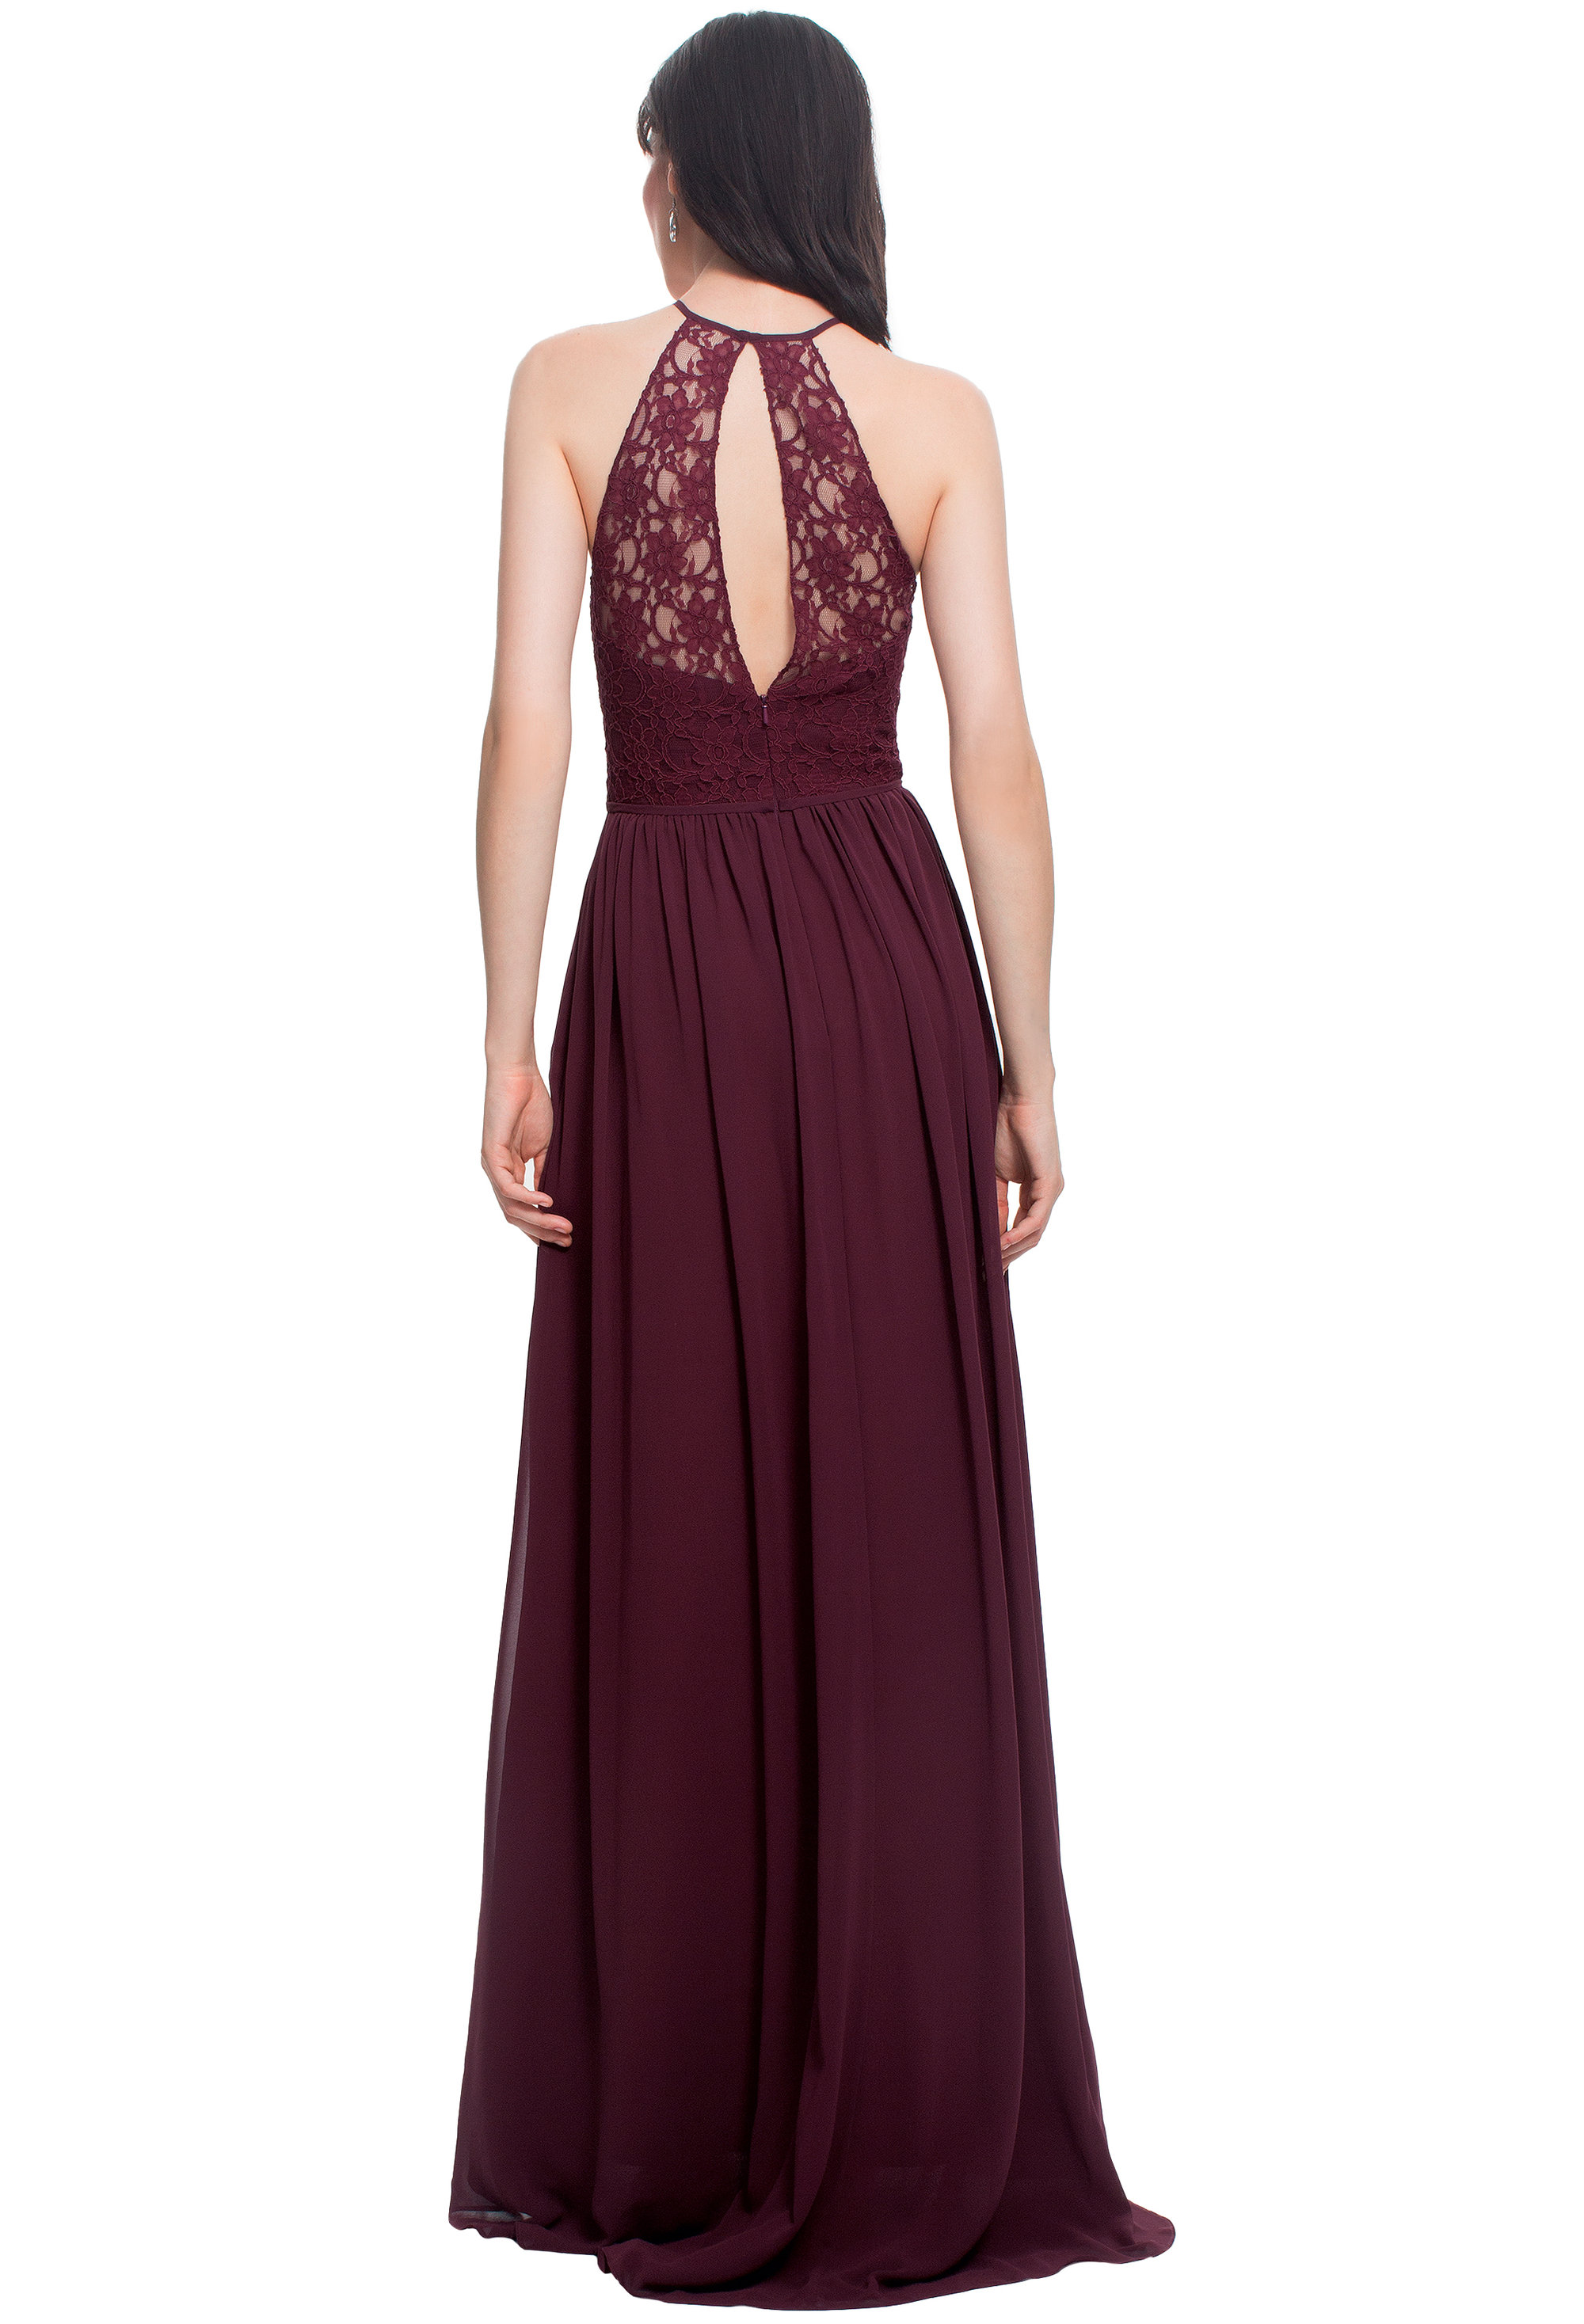 Bill Levkoff WINE Lace Sweetheart A-line gown, $220.00 Back